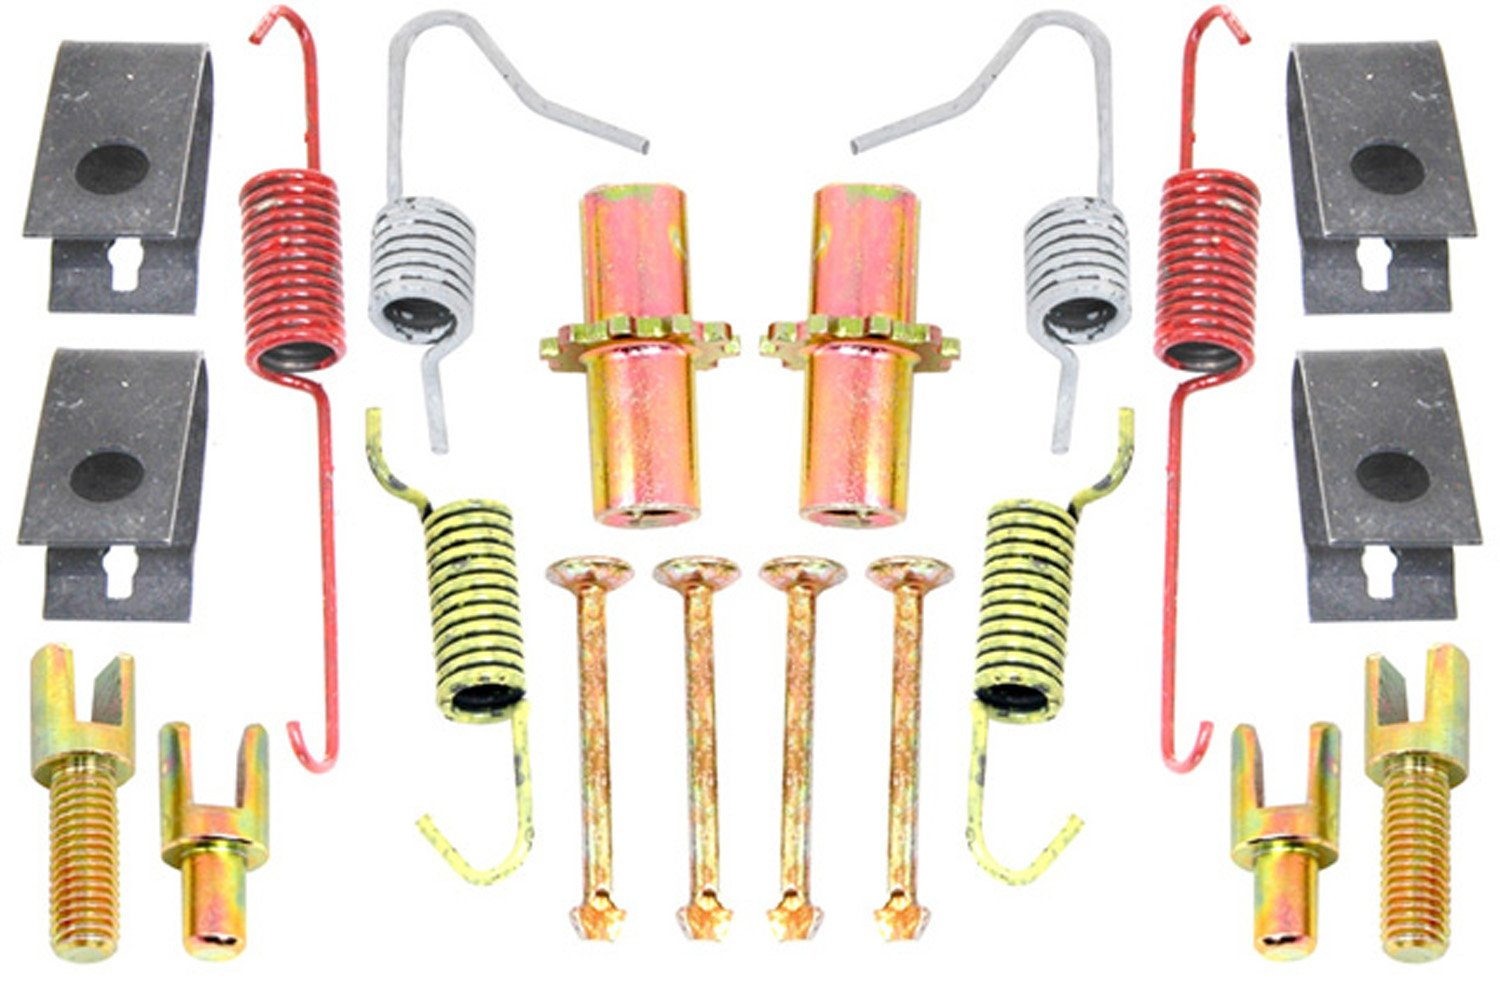 ACDelco 18K1153 Professional Rear Parking Brake Hardware Kit with Springs, Adjusters, Pins, and Retainers